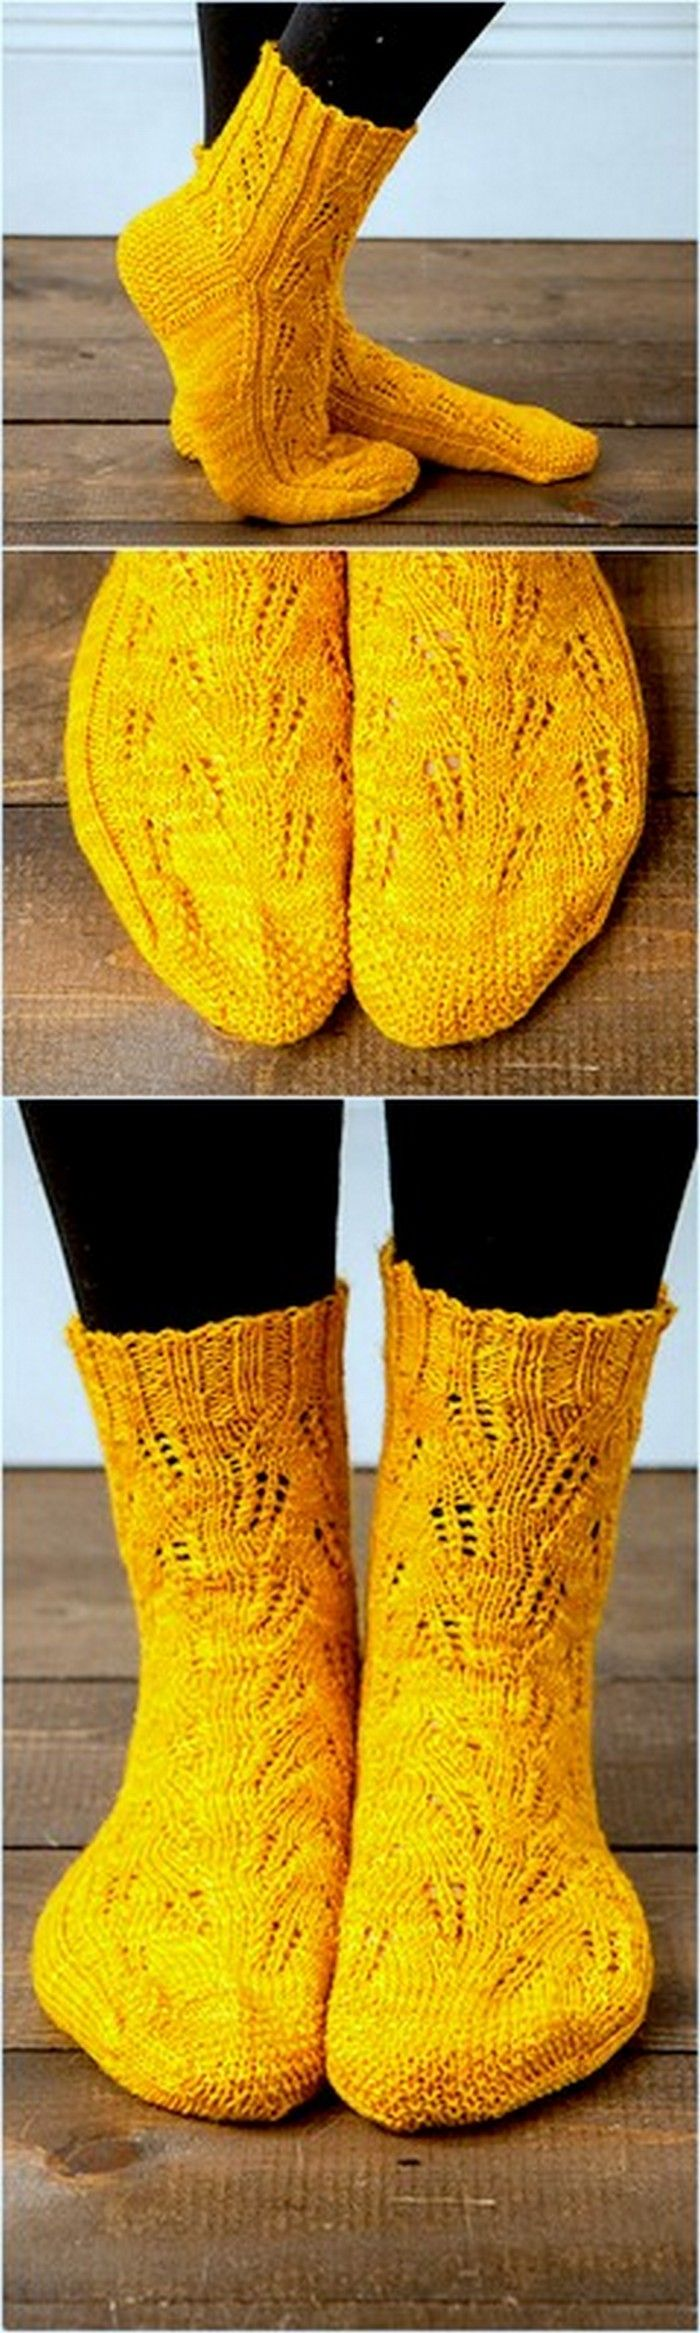 Classic Yet Simple Crochet Pattern Ideas & Project…